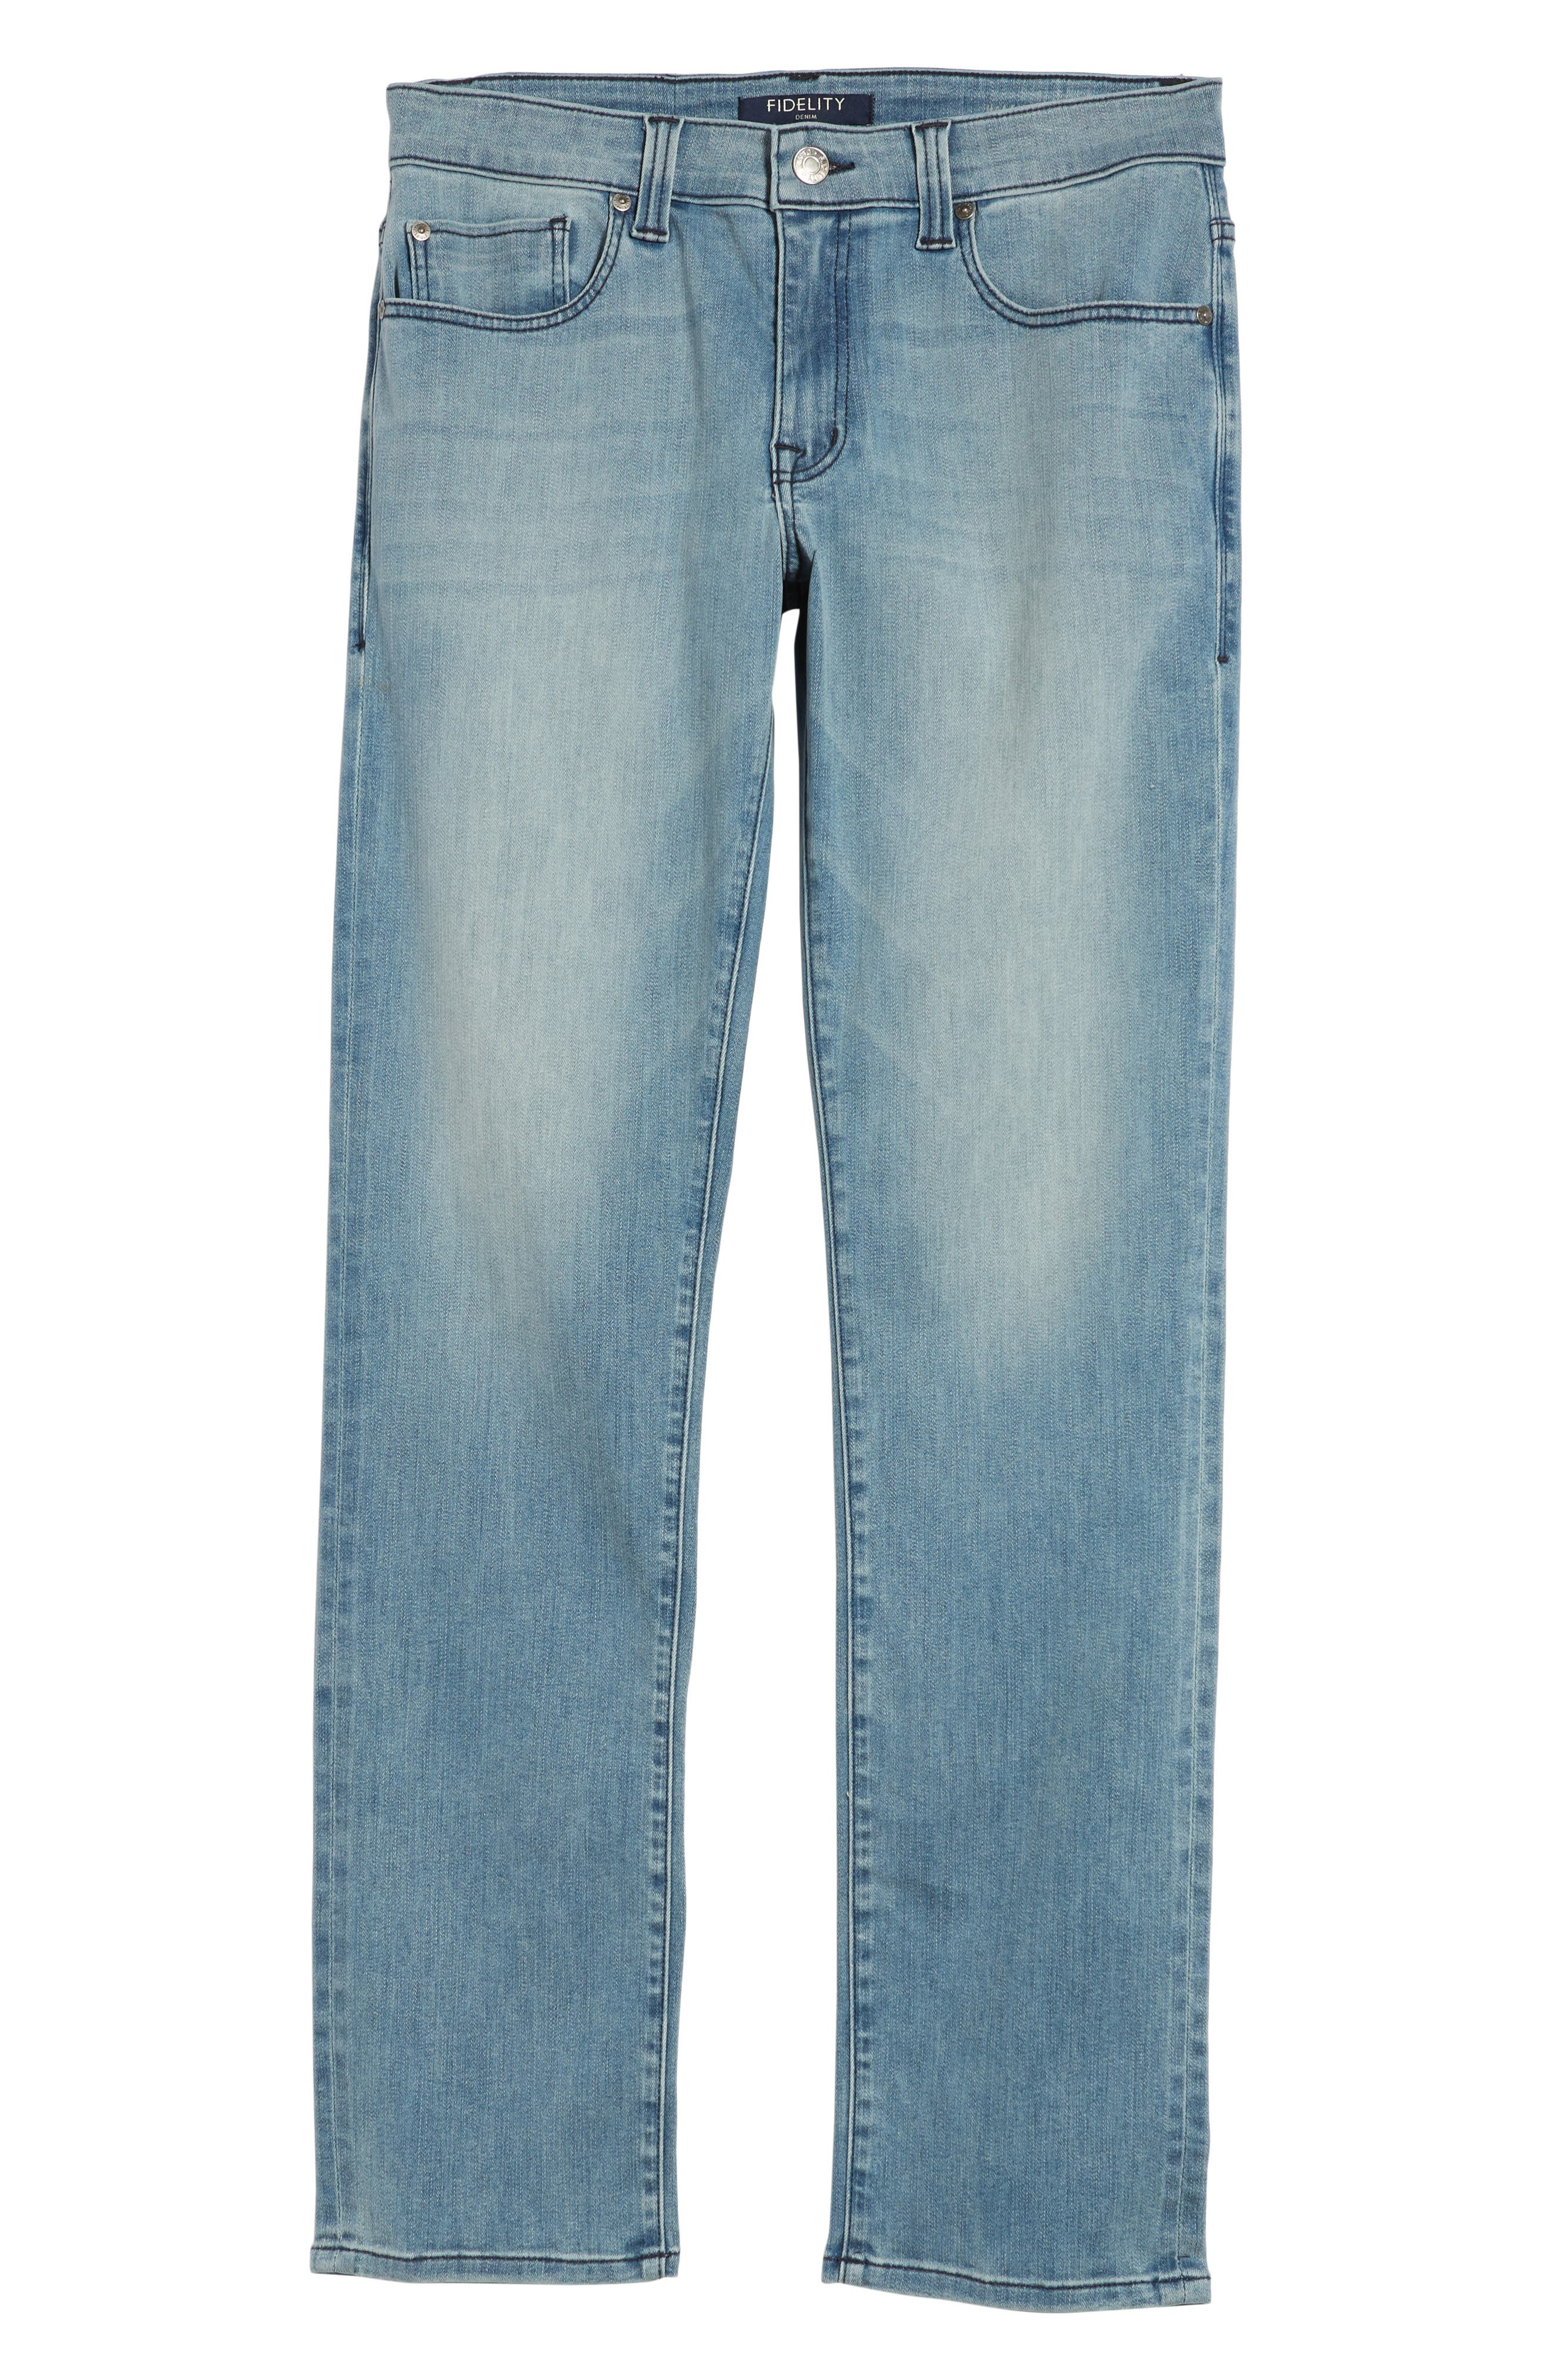 Jimmy Slim Straight Leg Jeans,                             Alternate thumbnail 6, color,